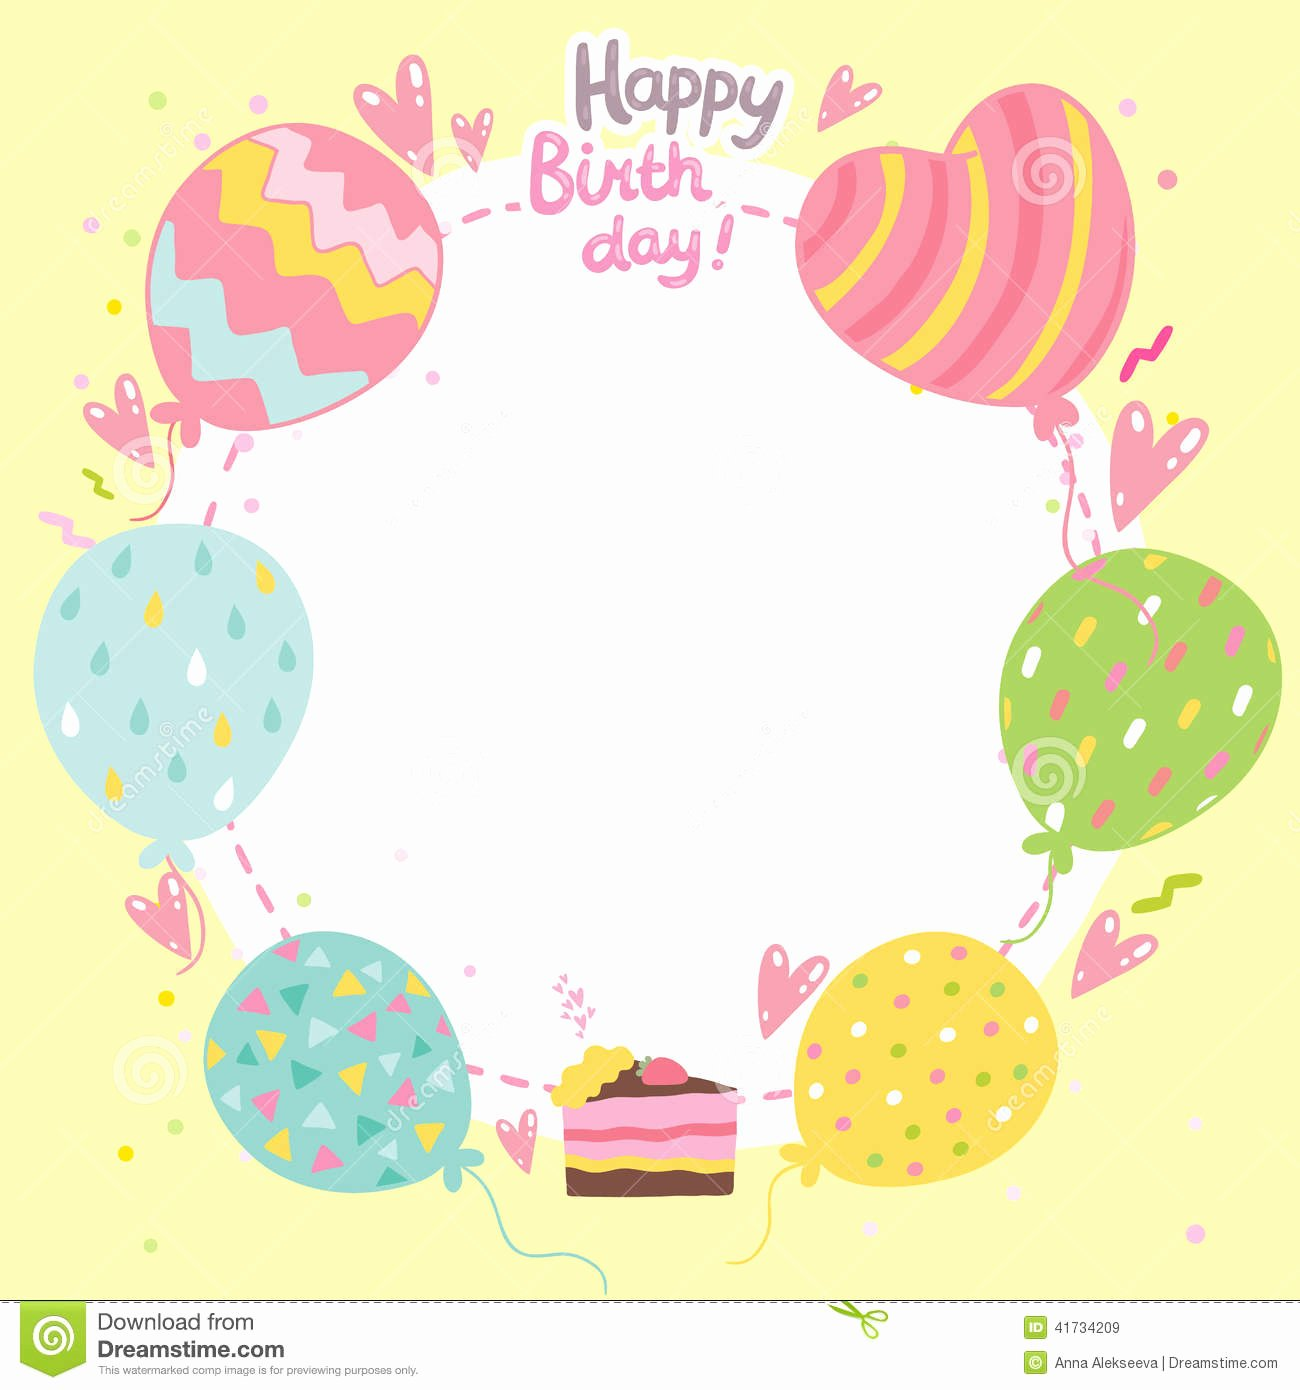 Happy Birthday Template for Cake Lovely Happy Birthday Card Background with Balloons Stock Vector